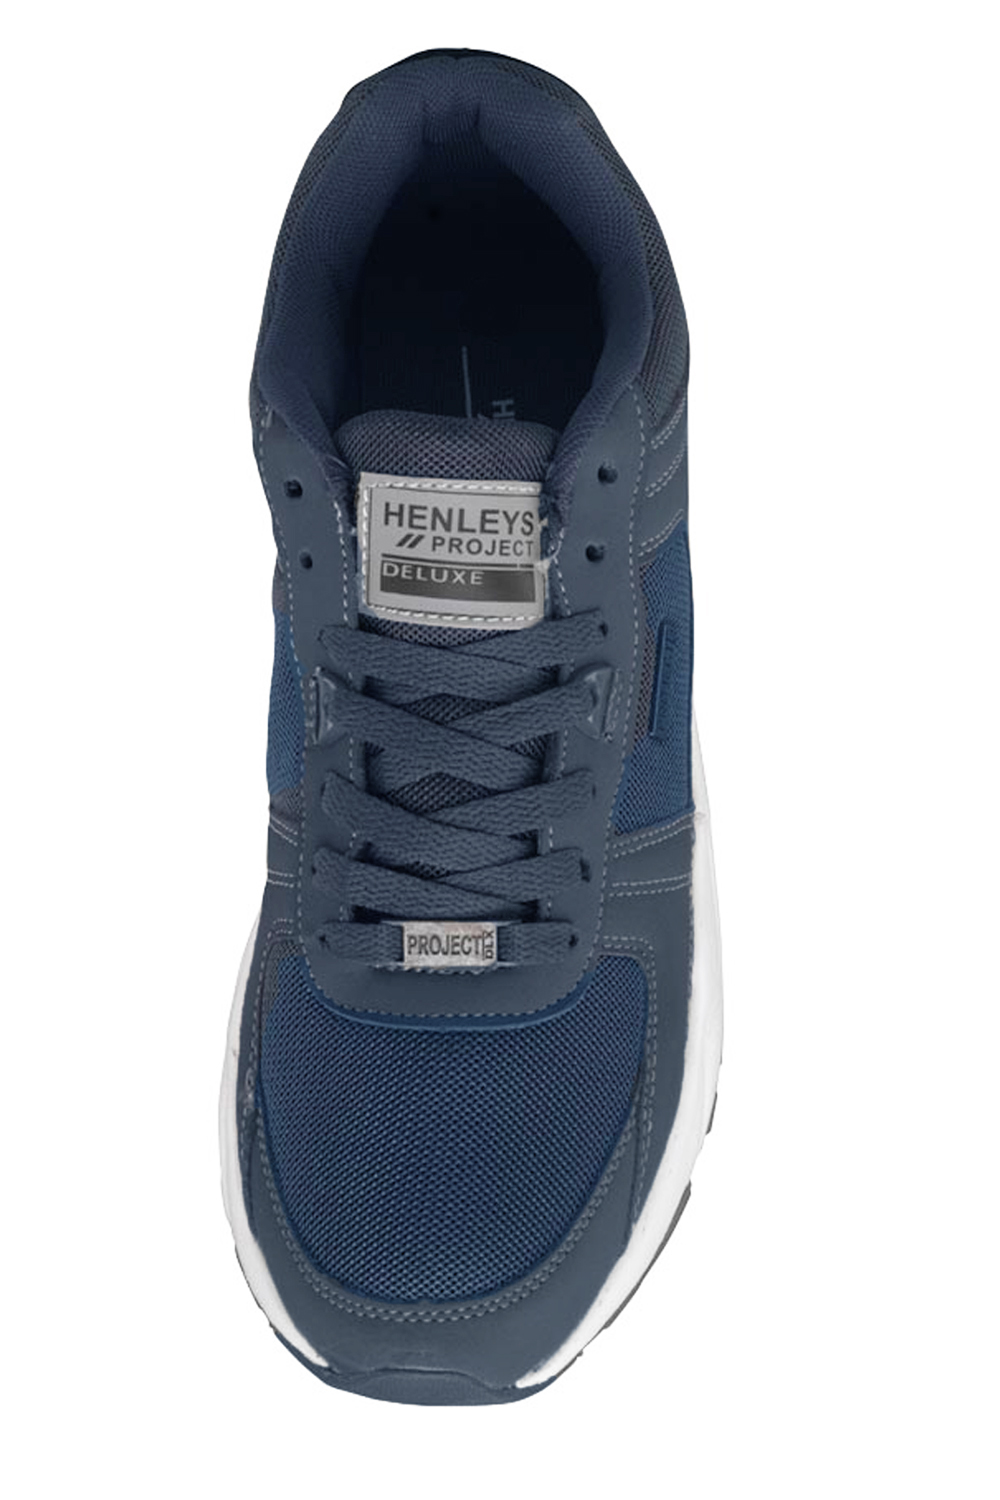 Henleys-Drexel-Markcus-Mens-Lace-Up-Low-Top-Trainers-Sport-Tennis-Casual-Shoes thumbnail 14